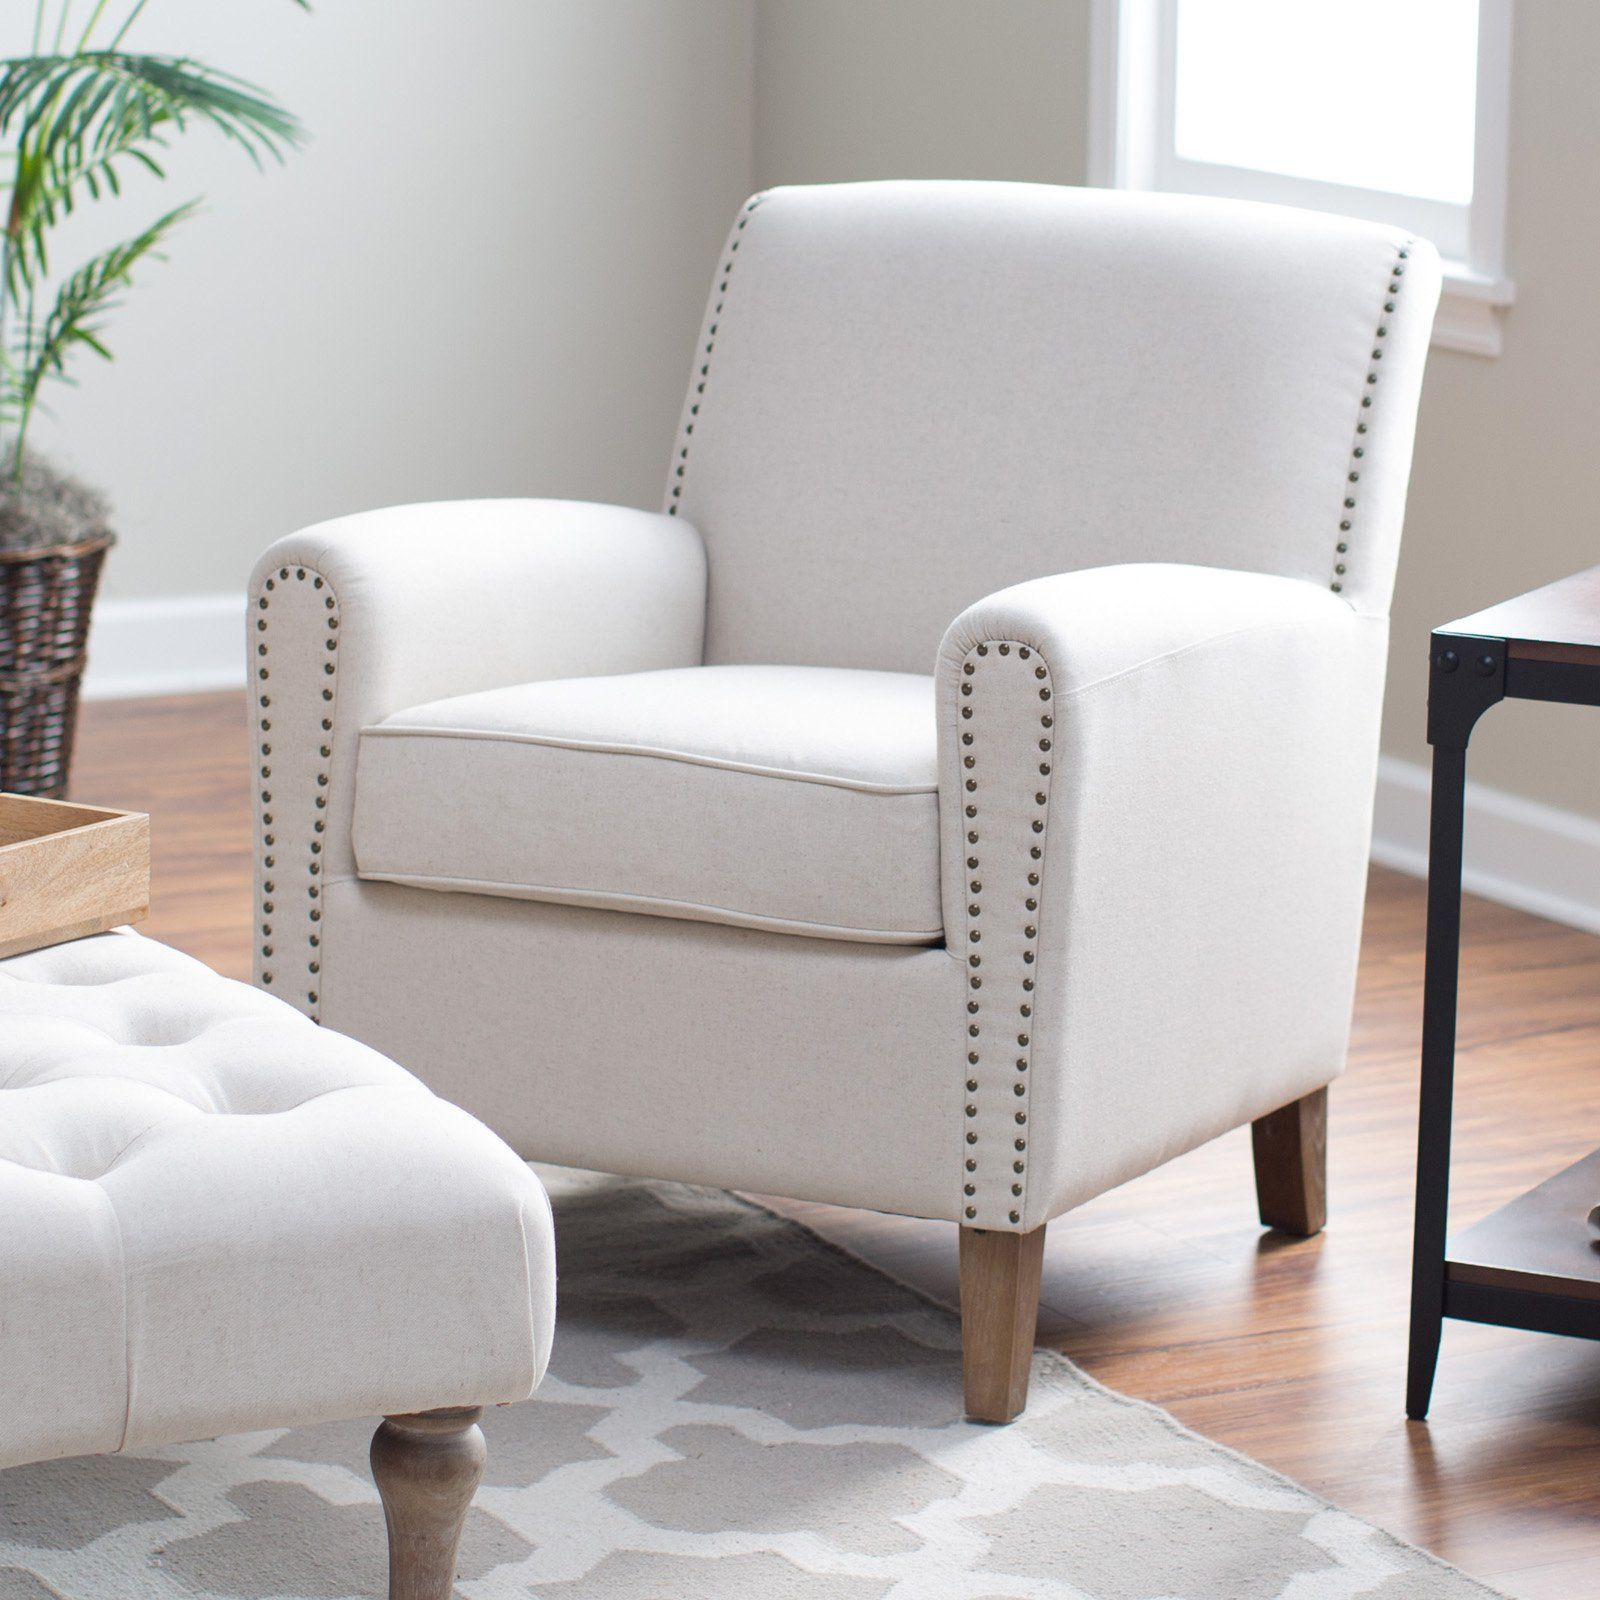 Belham Living Nala Arm Chair with Nailheads | from hayneedle.com ...